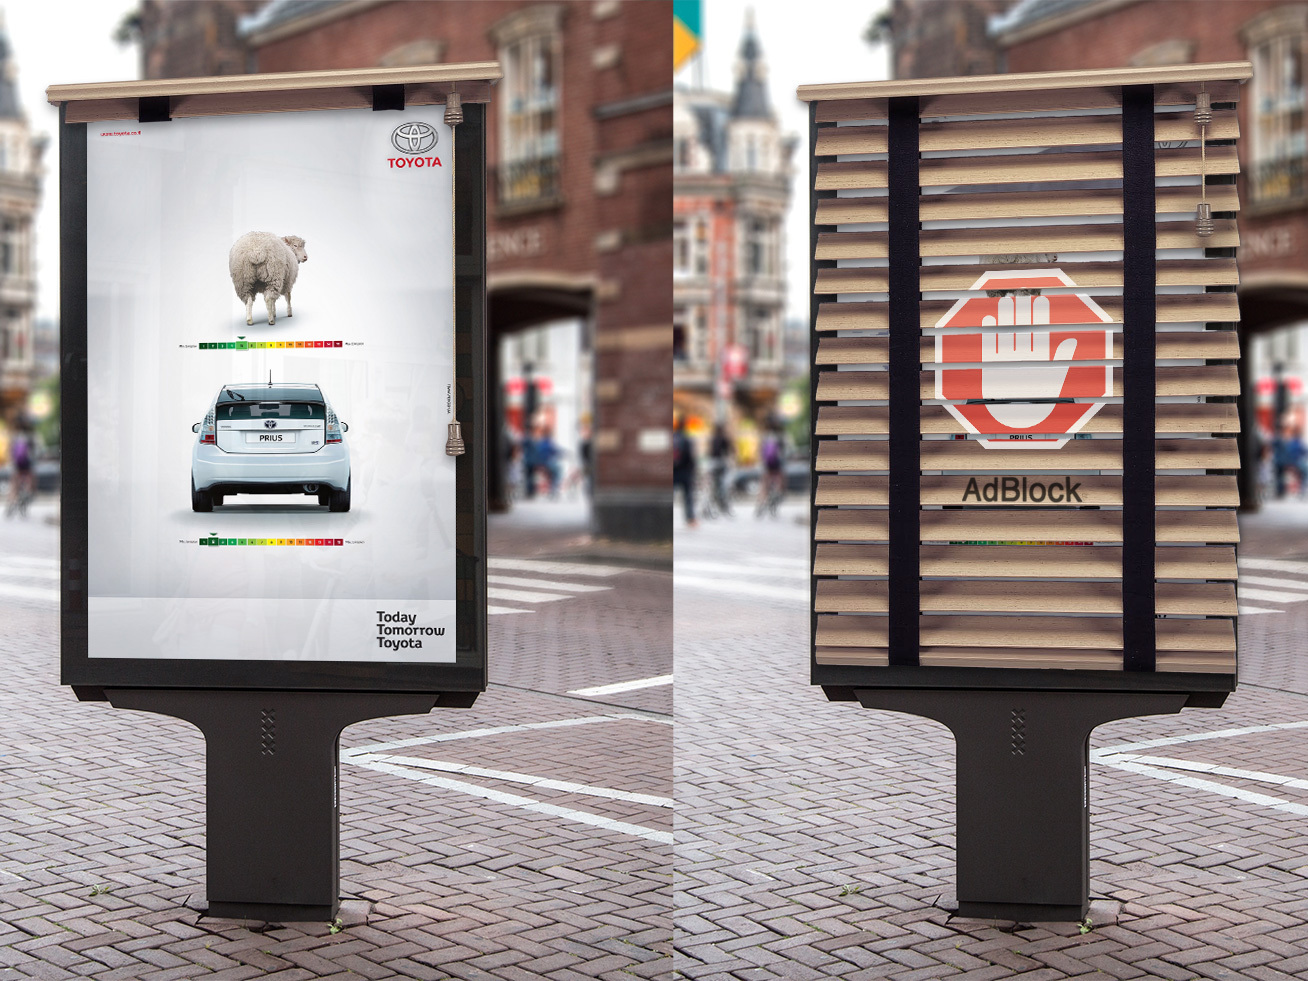 AN AD FOR ADBLOCK -